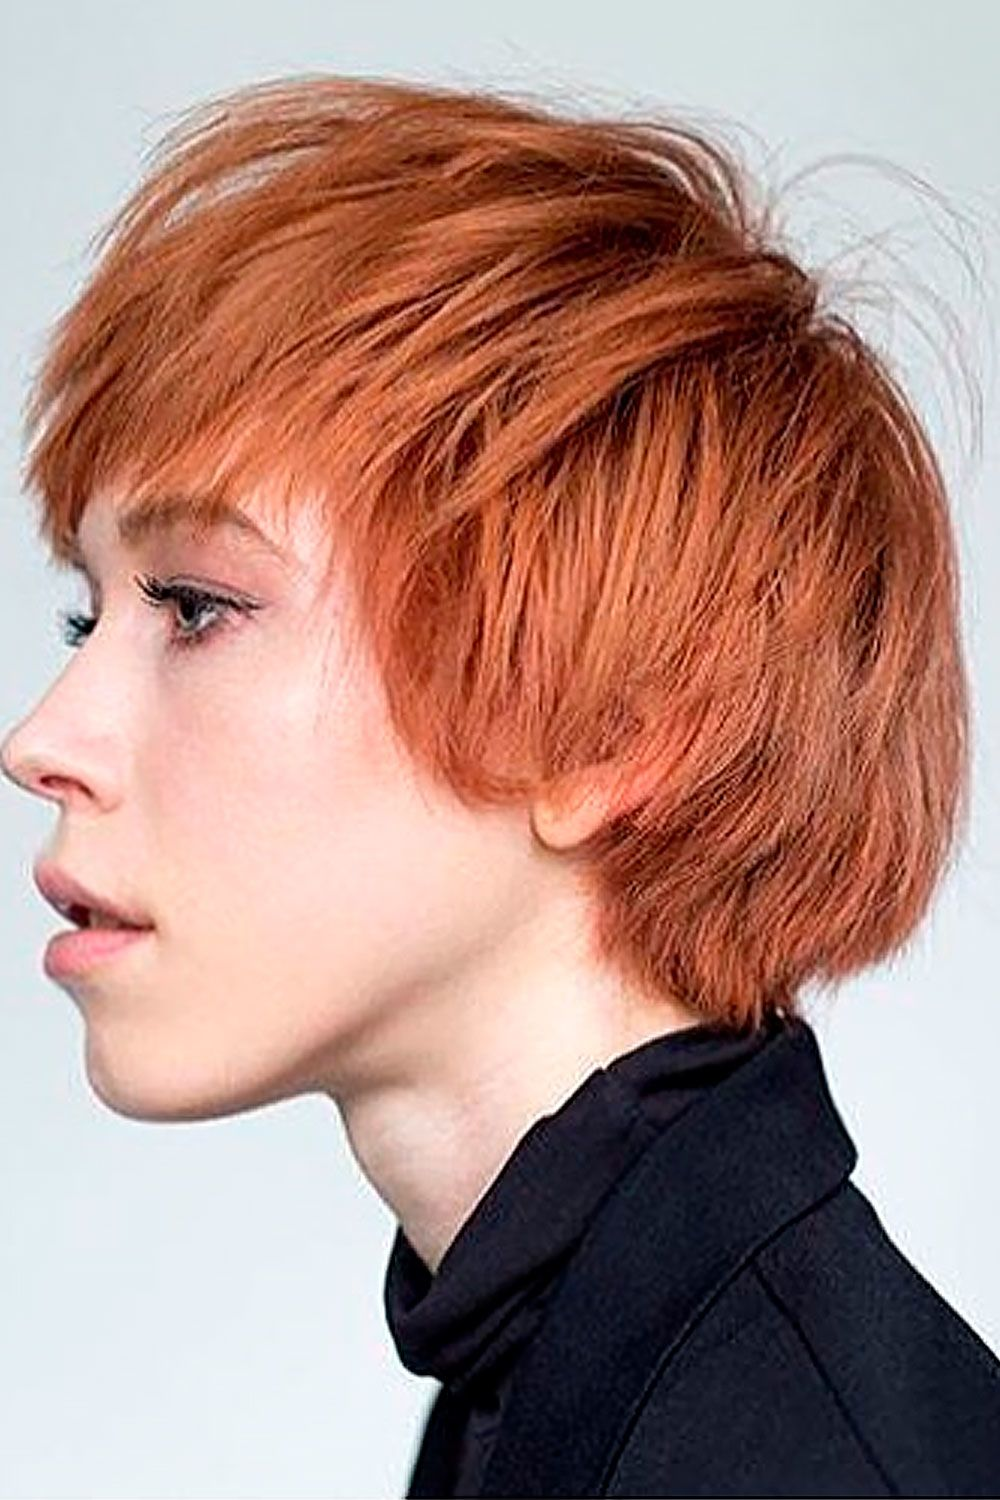 Red Pixie Hairstyles, short edgy hairstyles for women with round faces, short choppy hairstyles for round faces